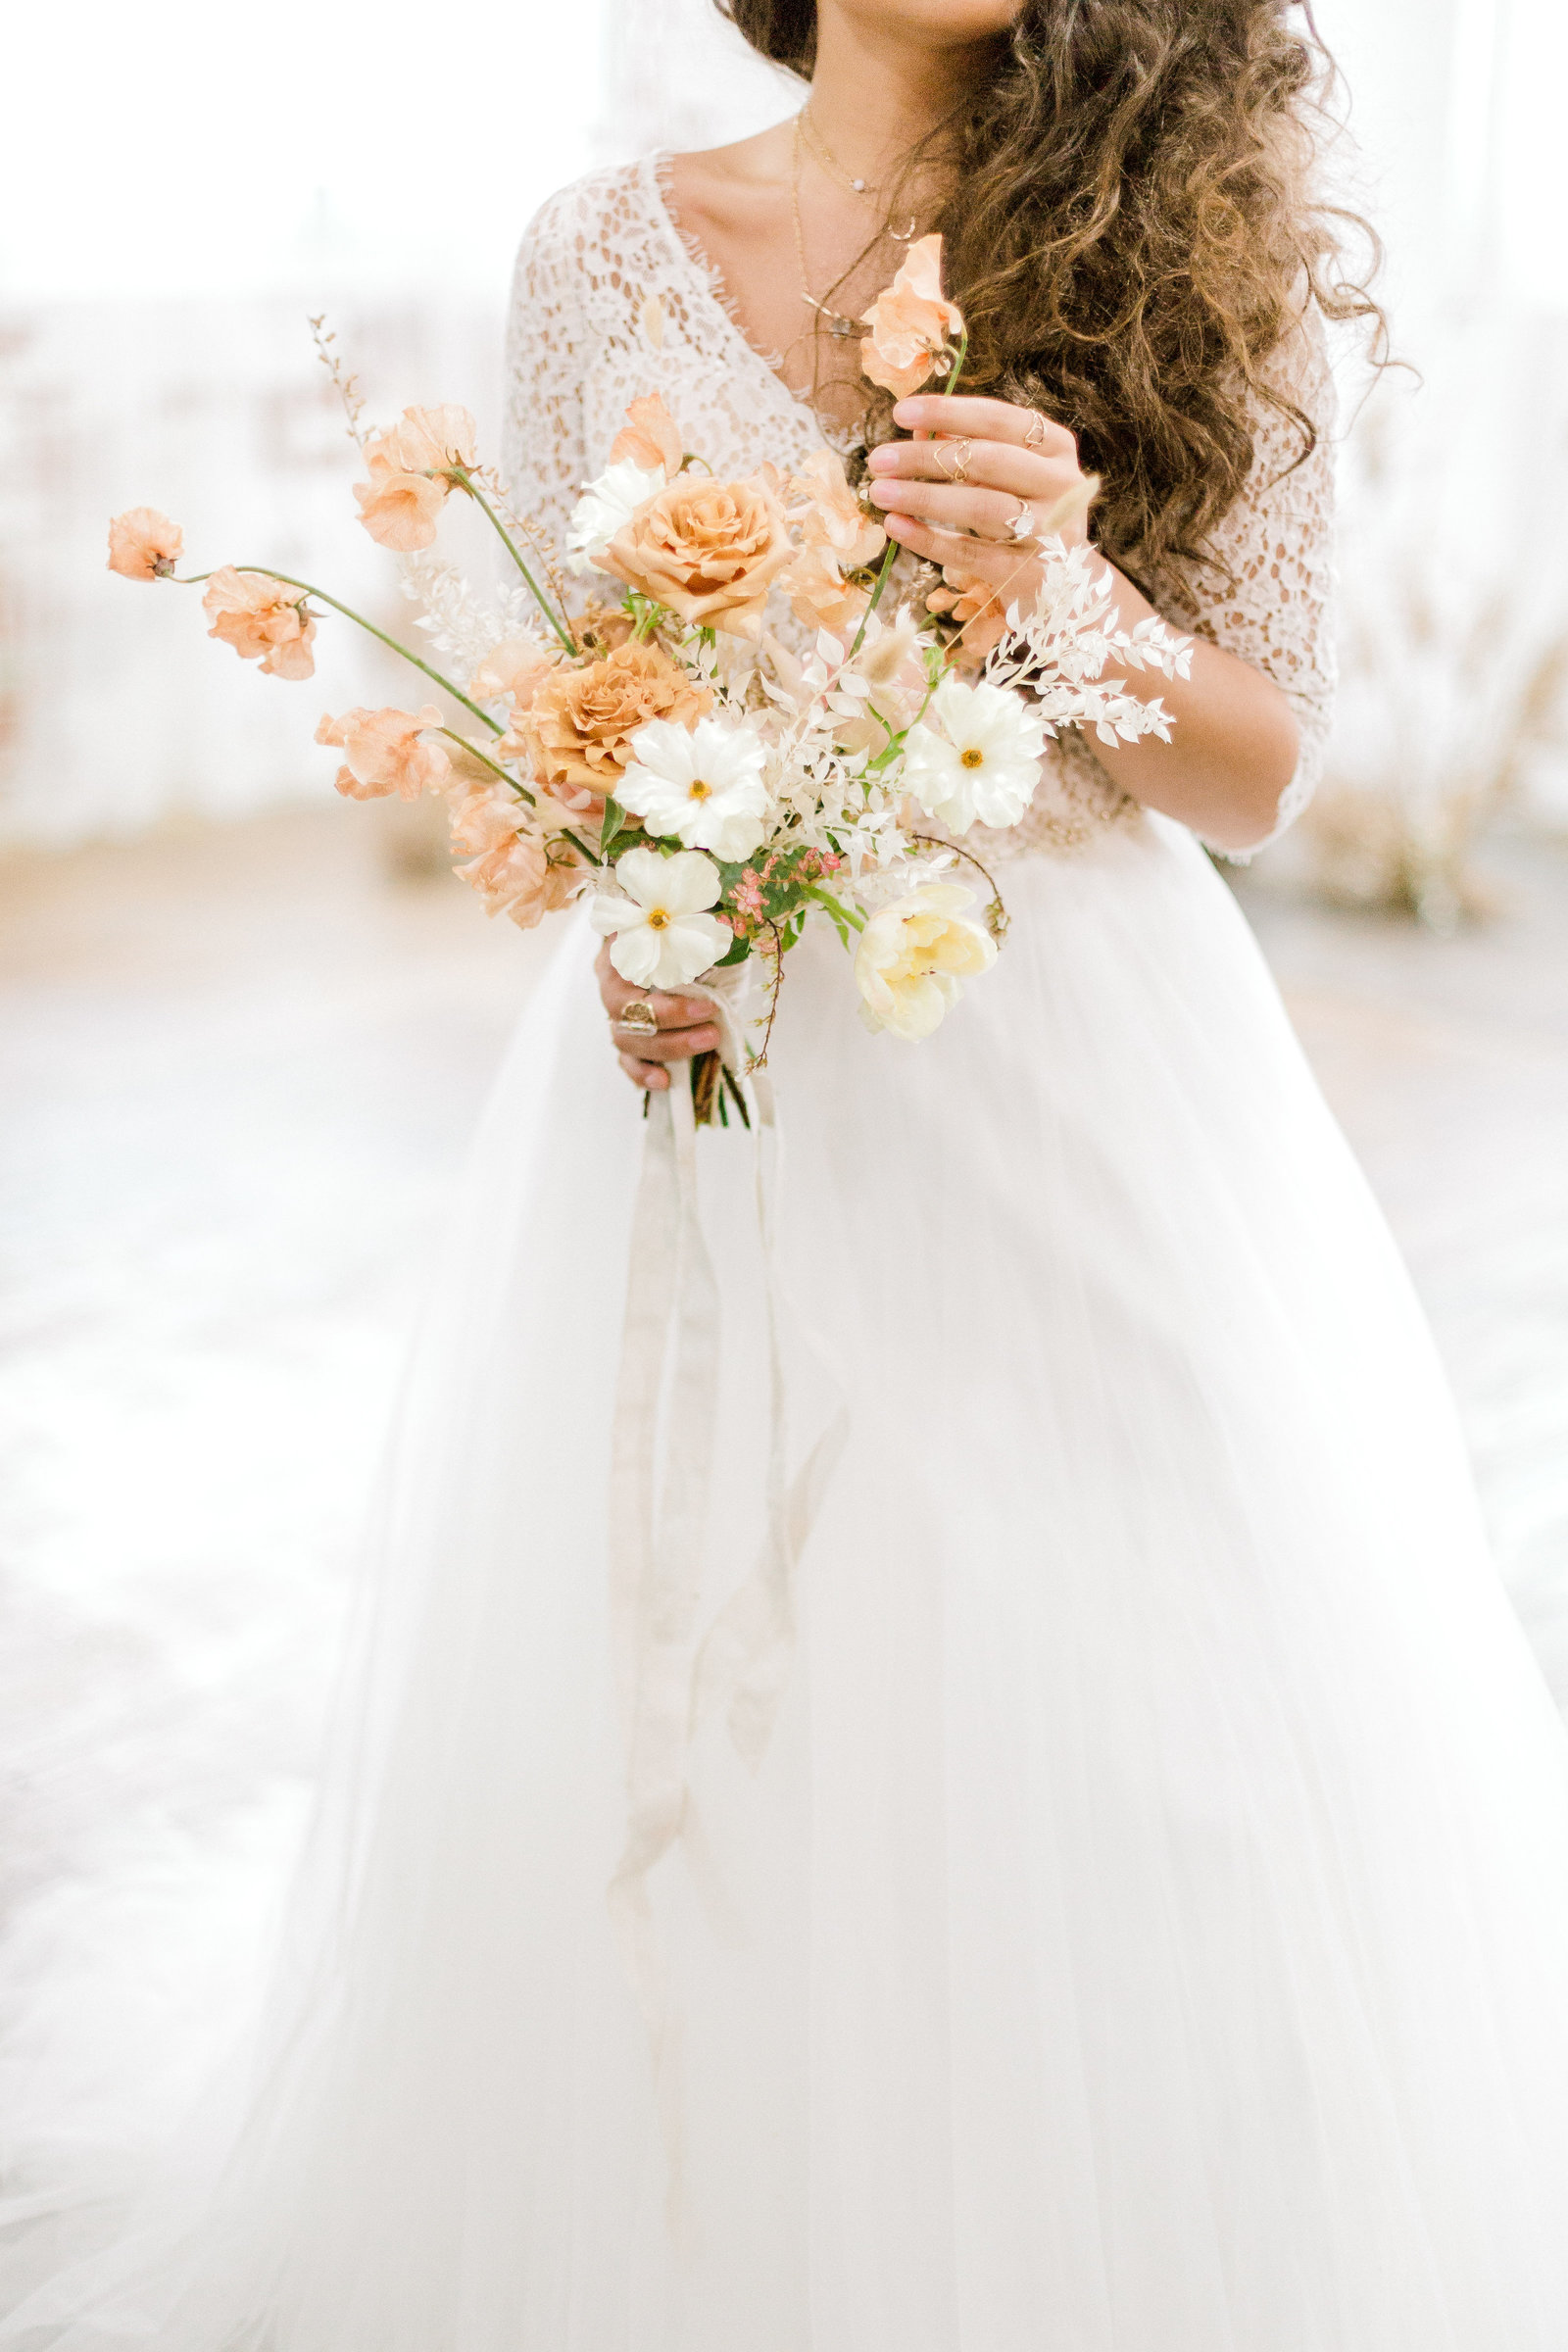 Neutral floral inspired styled bridal studio shoot fox and finch studios bethlehem pennylvania wedding photographer (54 of 155)